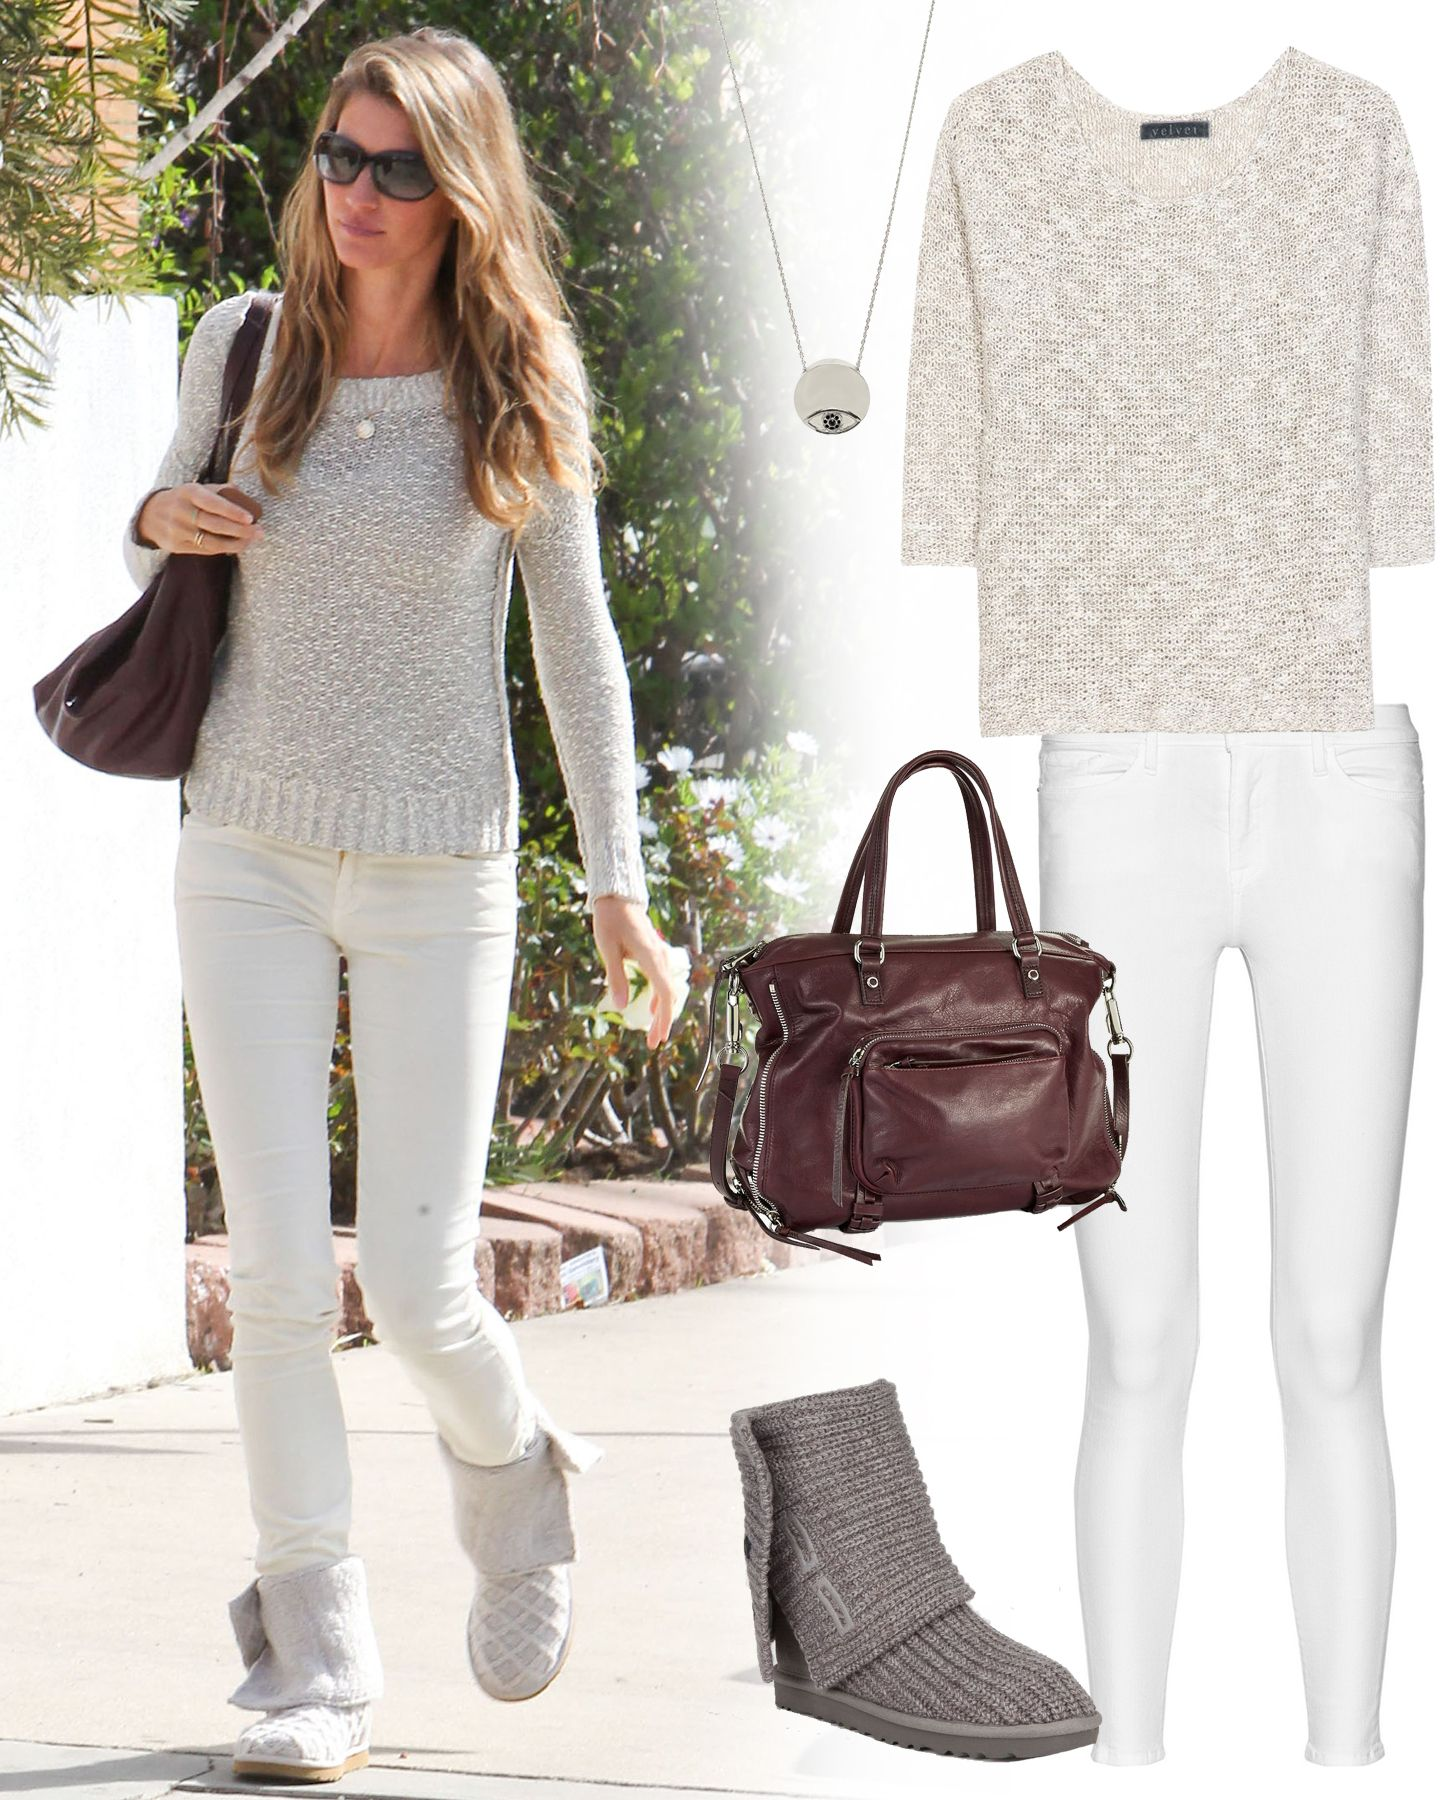 Look - How to uggs wear with baggy jeans video